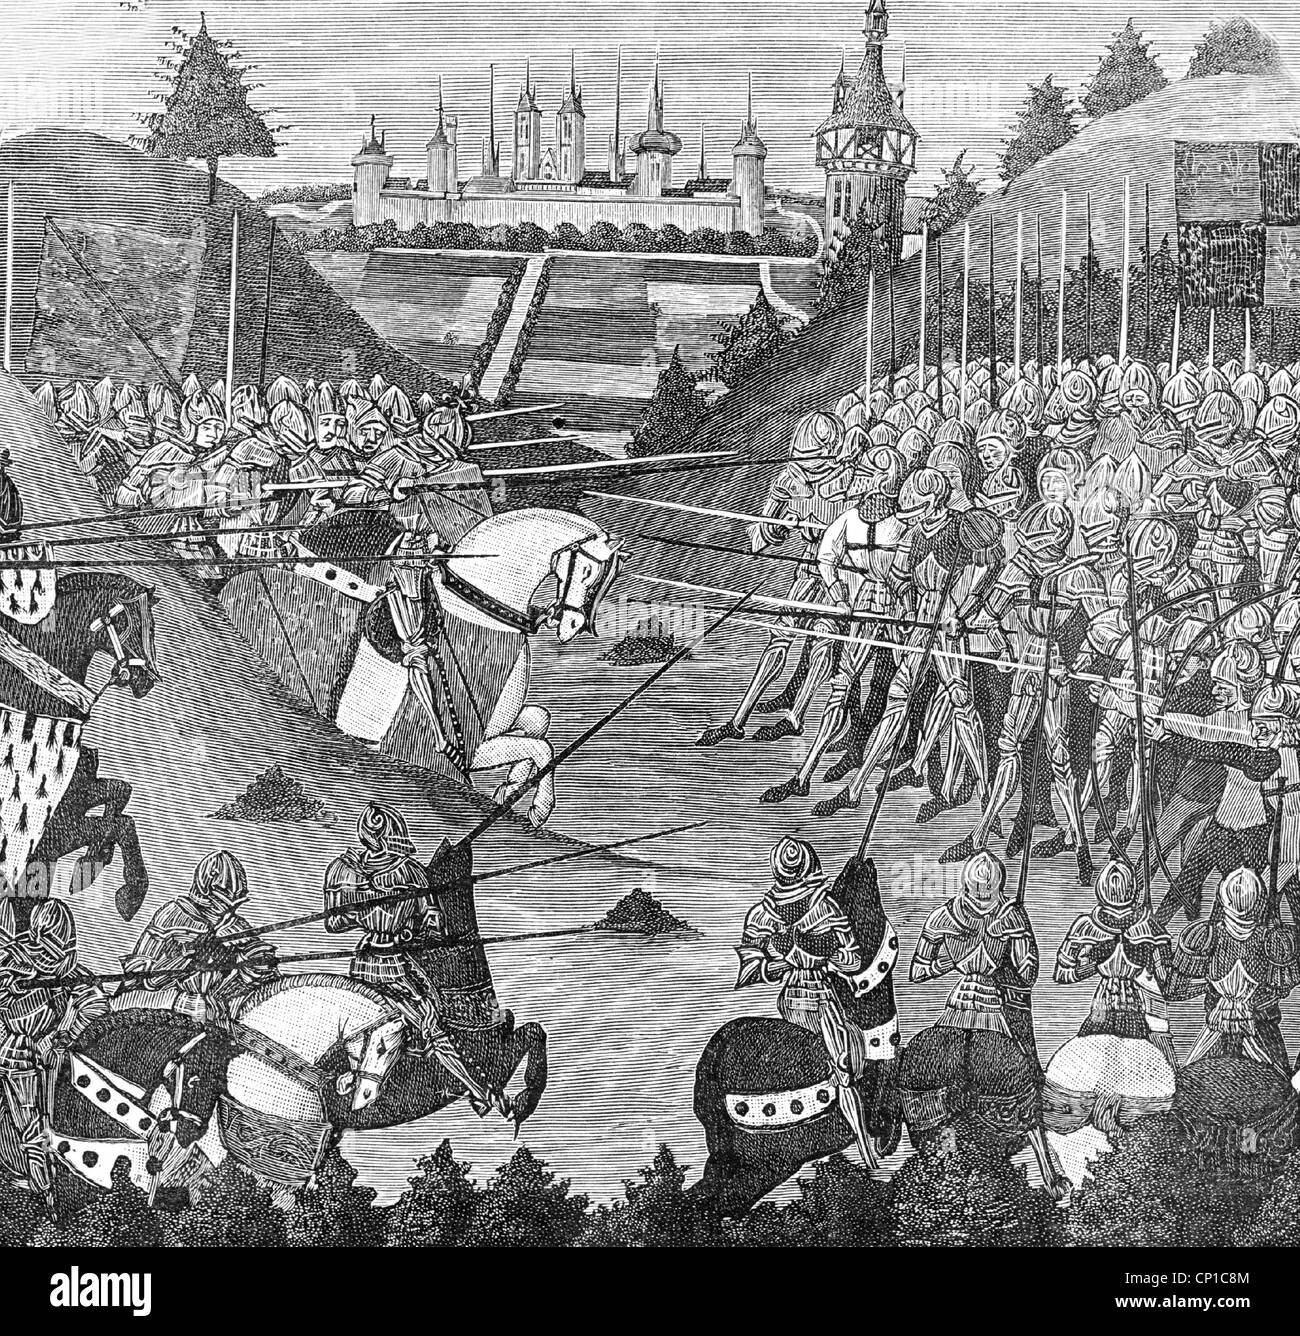 events, Hundred Years' War 1337 - 1453, Battle of Formigny 15.4.1450, French Victory over the Englishman, after - Stock Image